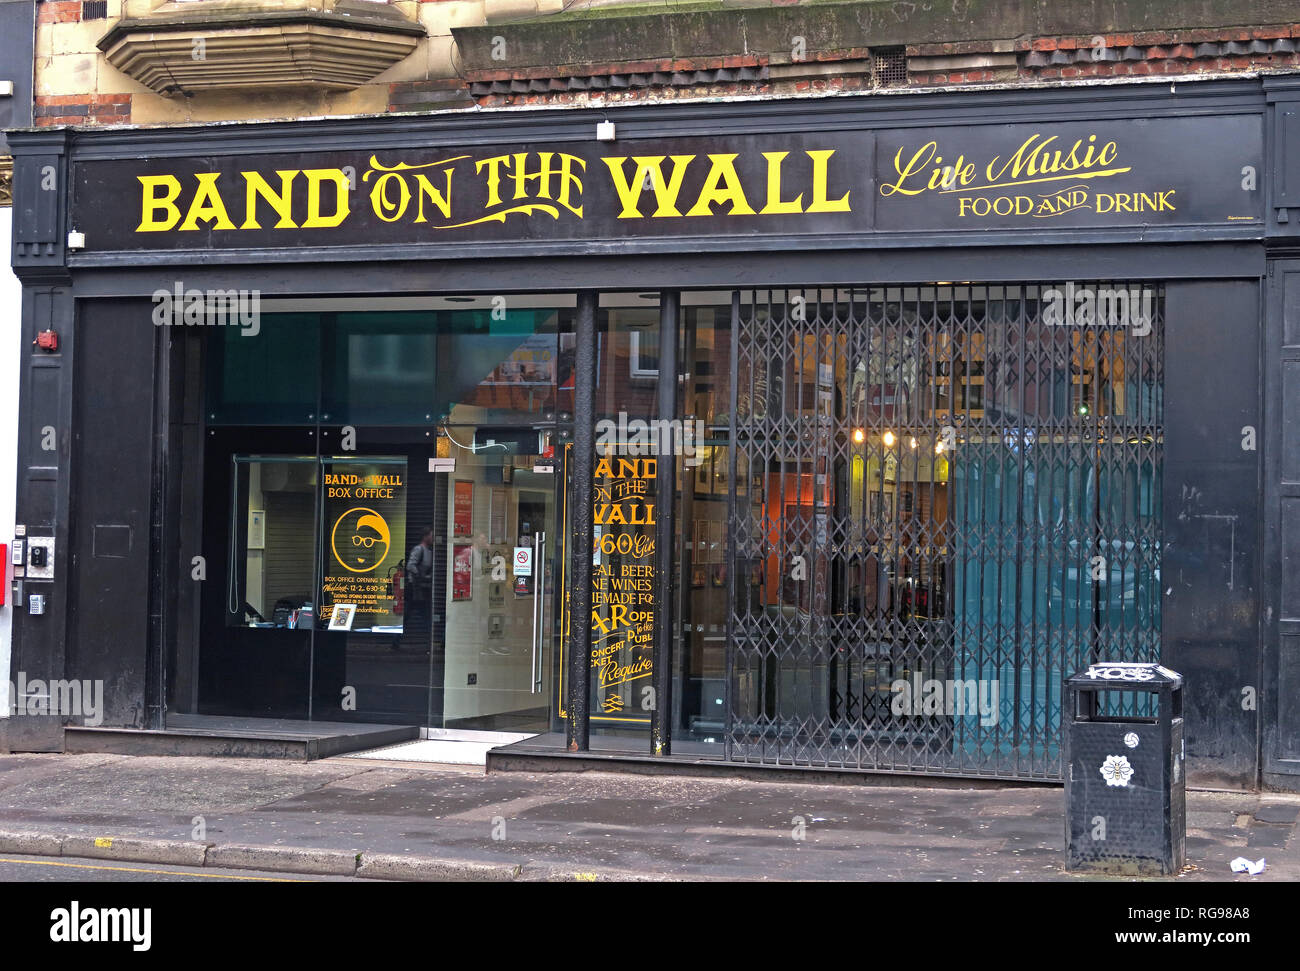 GoTonySmith,HotpixUK,@HotpixUK,England,UK,North West England,manchester,city centre,NQ4,Manchester,M4 5JZ,Band,bands,M4,music,Inner City Music Ltd,registered charity,front,frontage,cafe,bar,pub,food,drink,Manchesters,premier,jazz venue,Best Night Spot